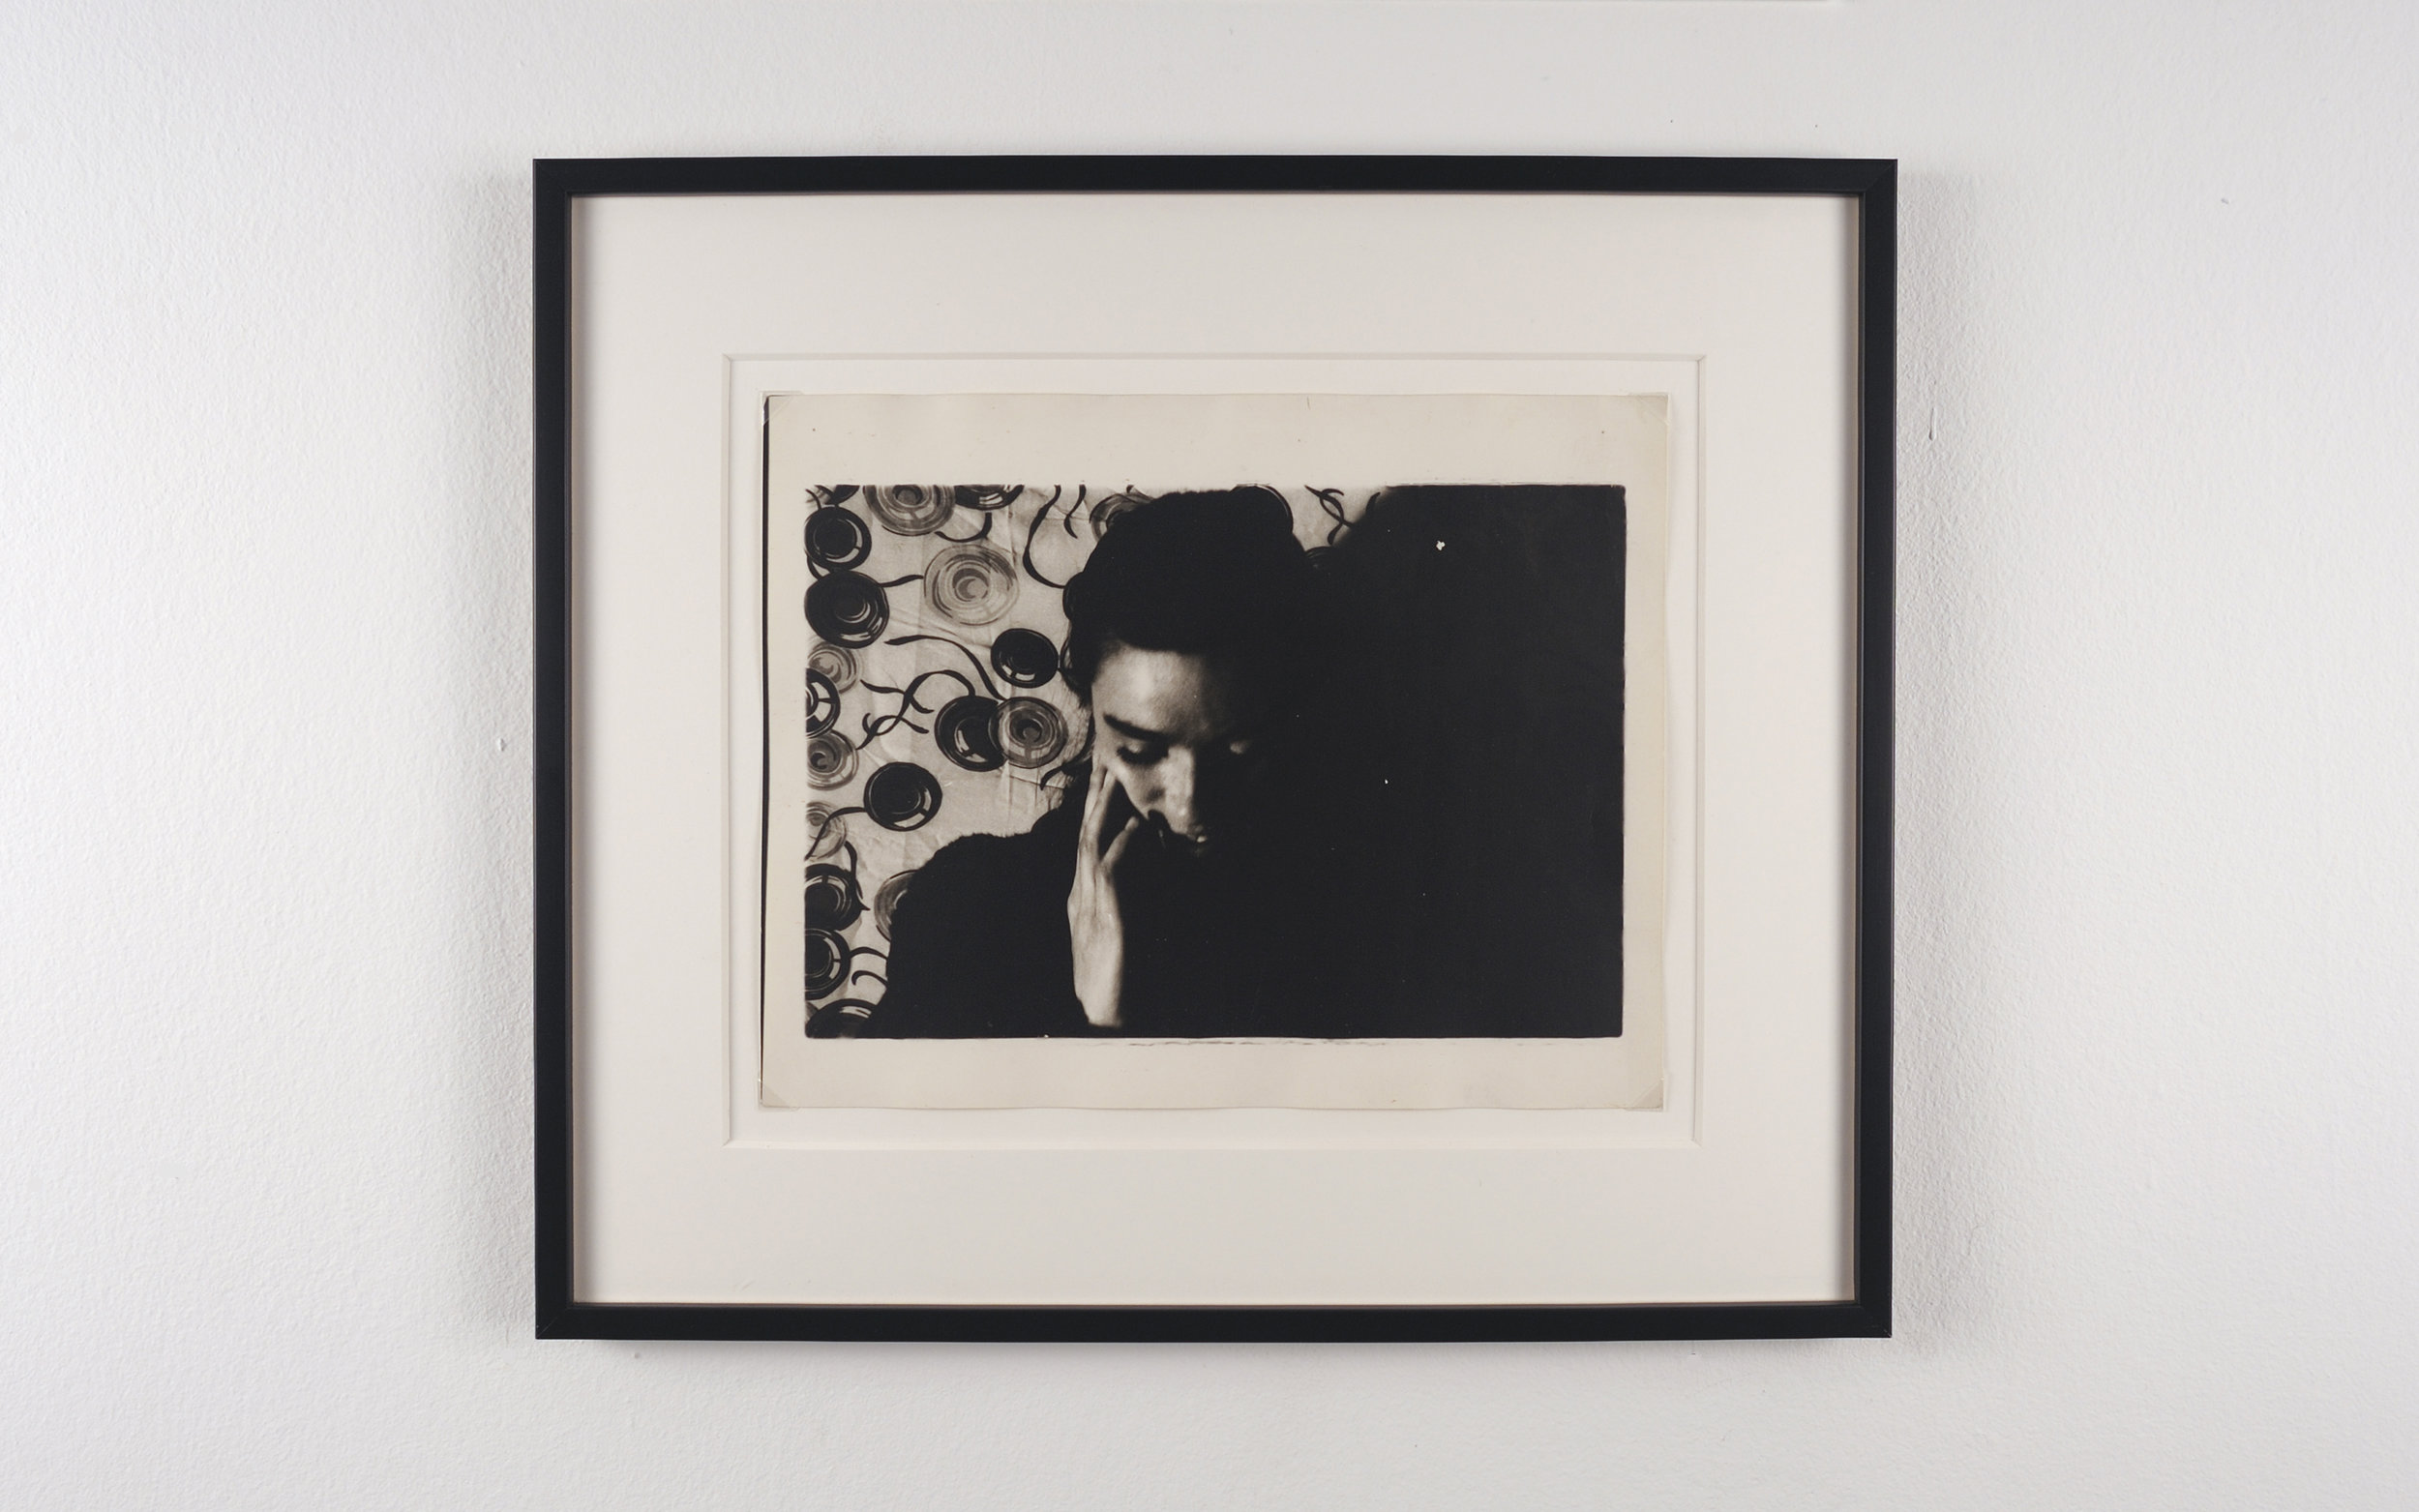 Jim Shaw, Untitled, 1978 black and white photograph 33 x 38 cm - 13 x 15 inches (framed)